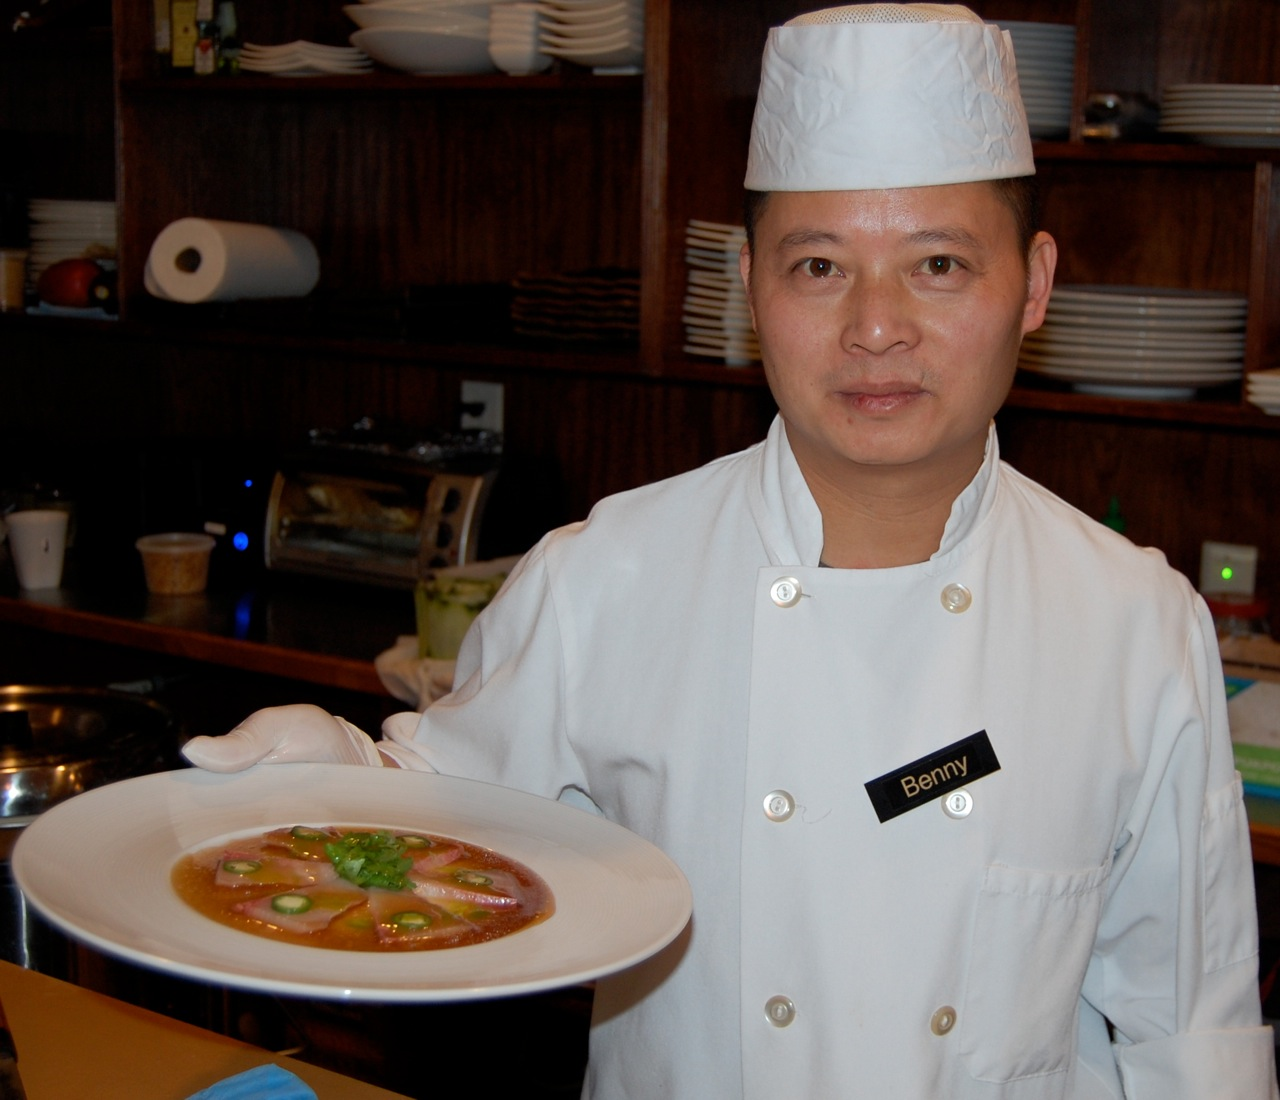 Chef Benny Chow presents one of his many unique — and off-the-menu — dishes at his Ki Asian Bistro in Danbury.